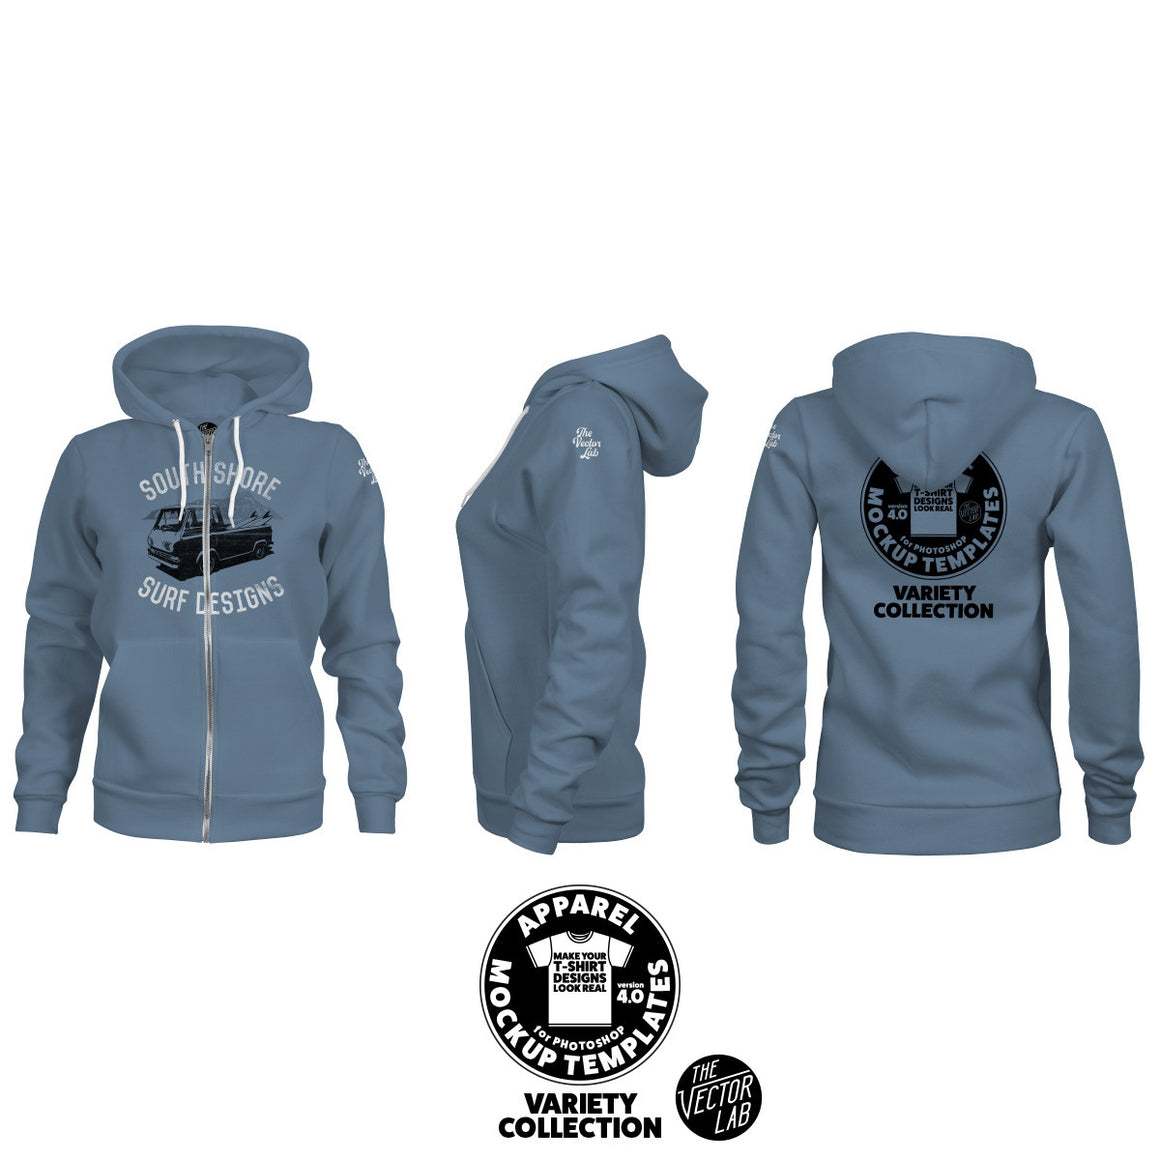 Women's Zipper Hoodie Mockup Templates for Photoshop